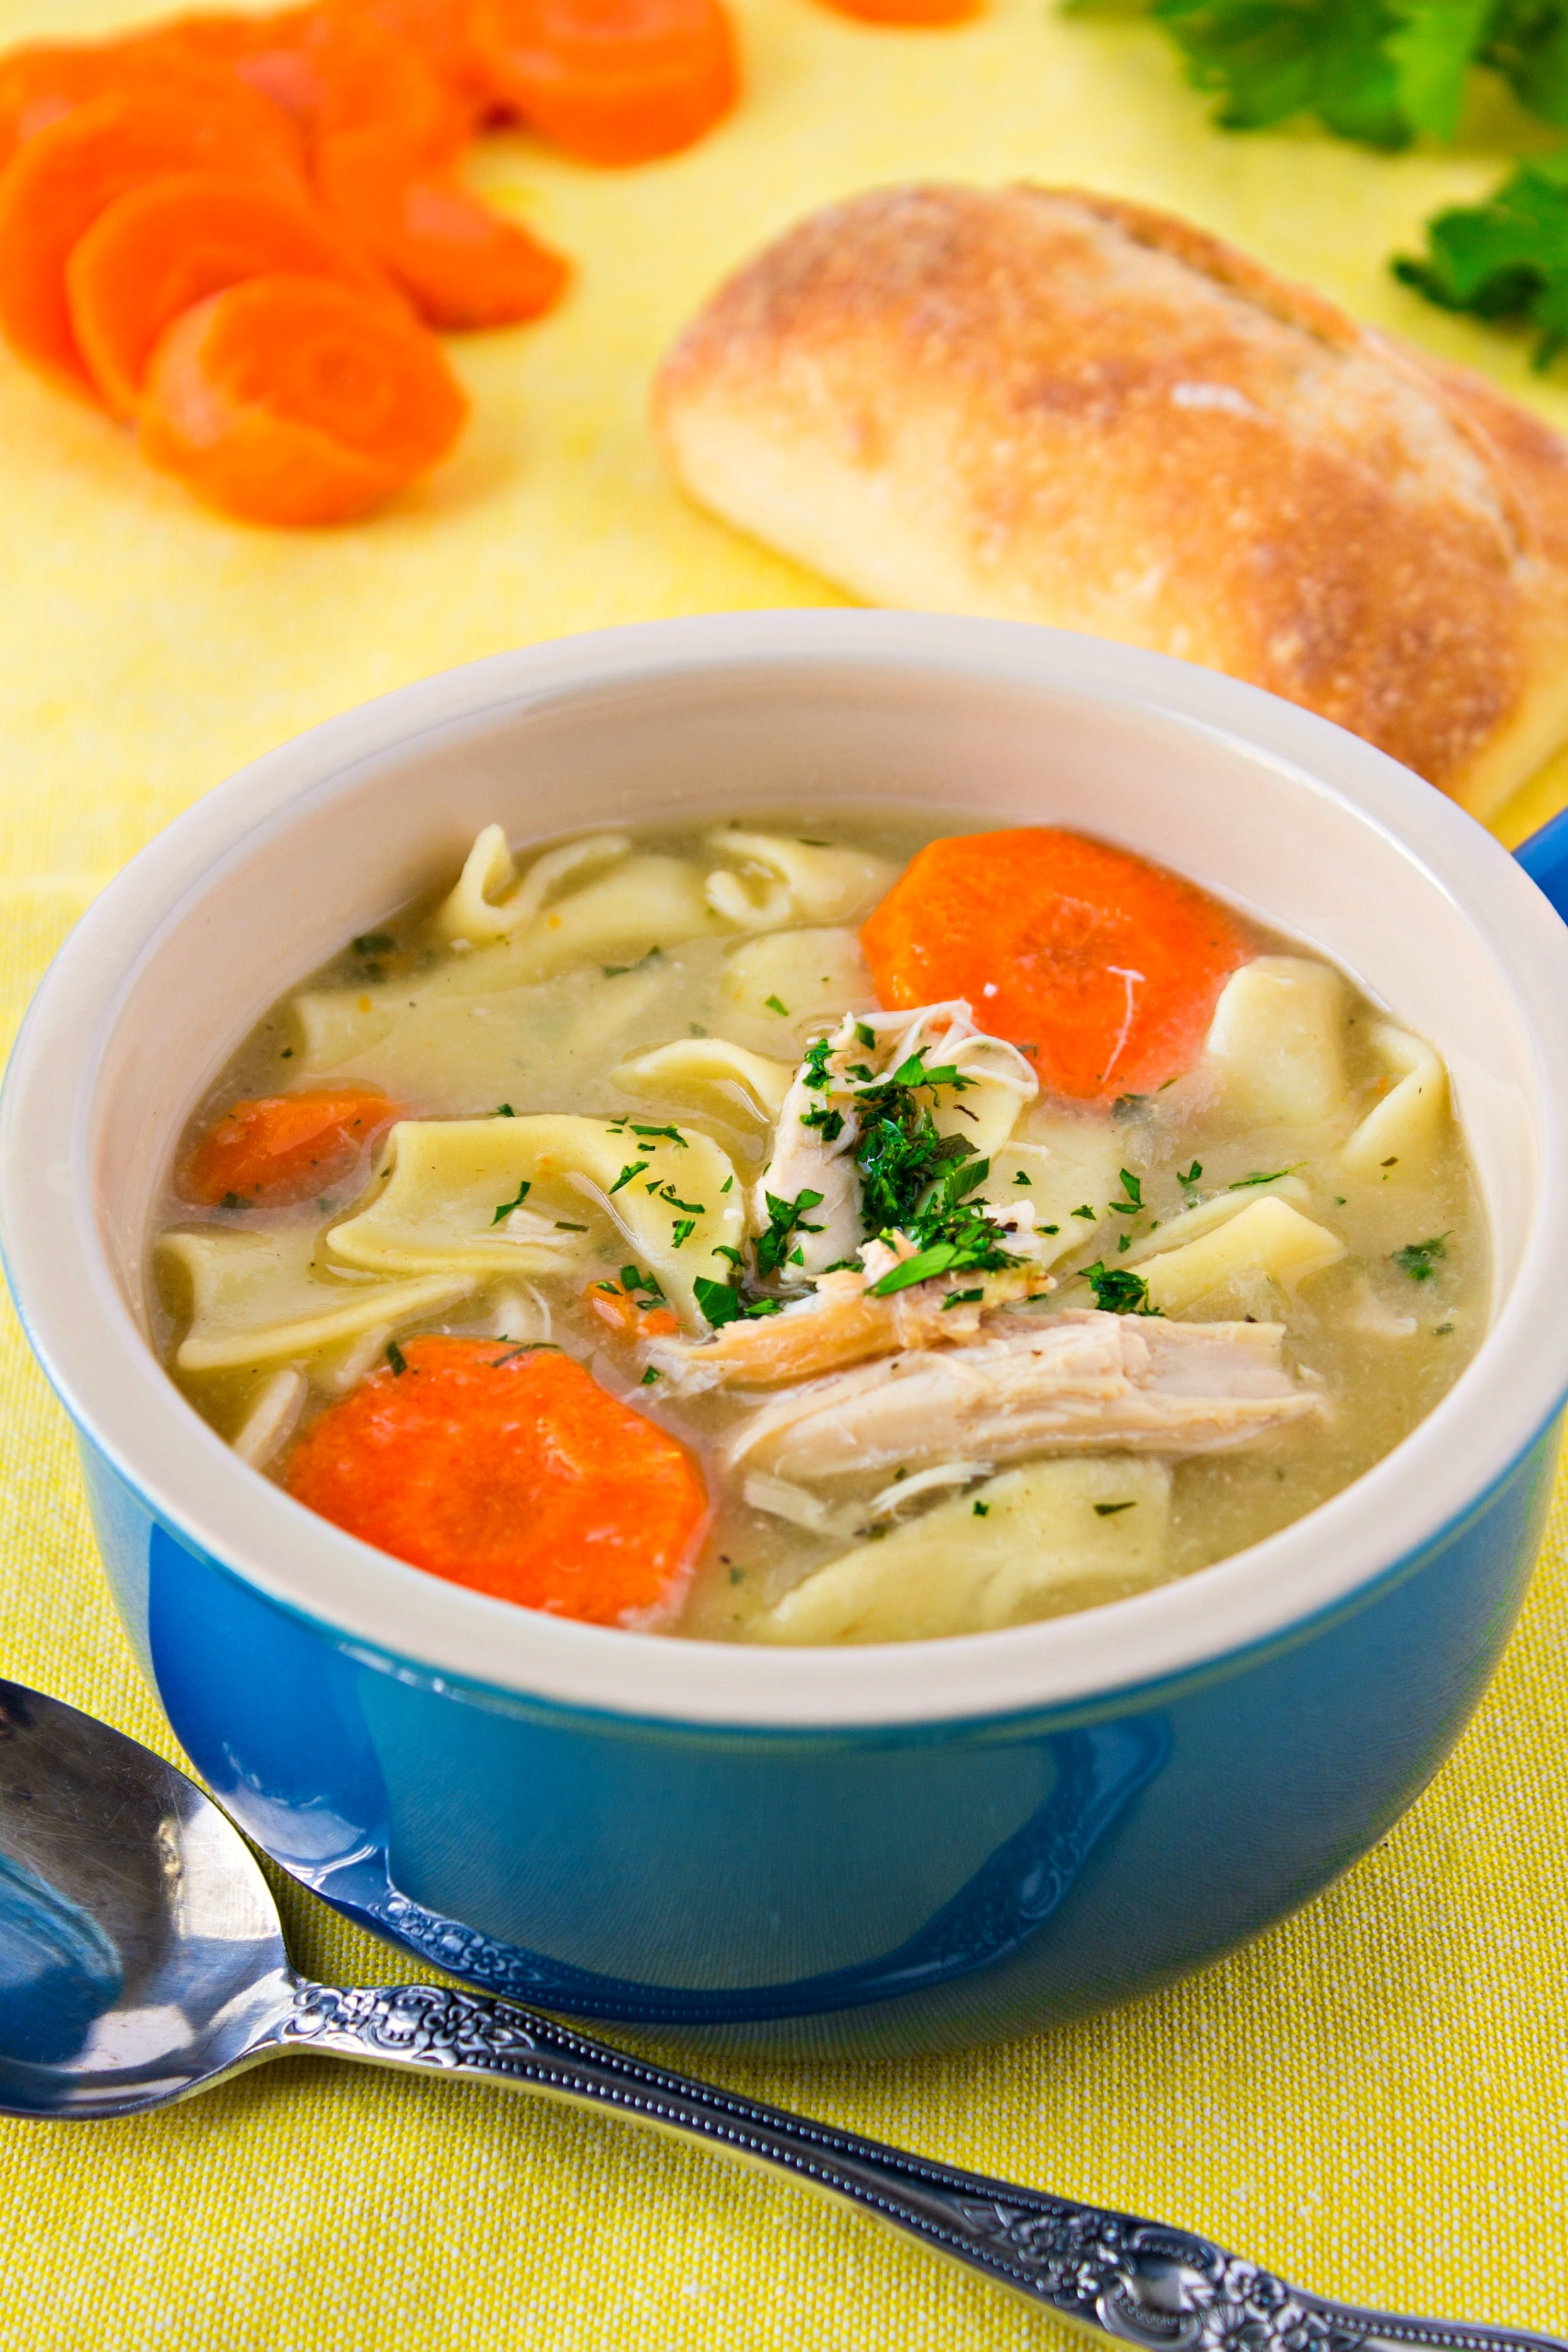 Turkey Noodle Soup - A super easy turkey noodle soup to warm you up on cold nights. And the perfect way to use turkey leftovers!